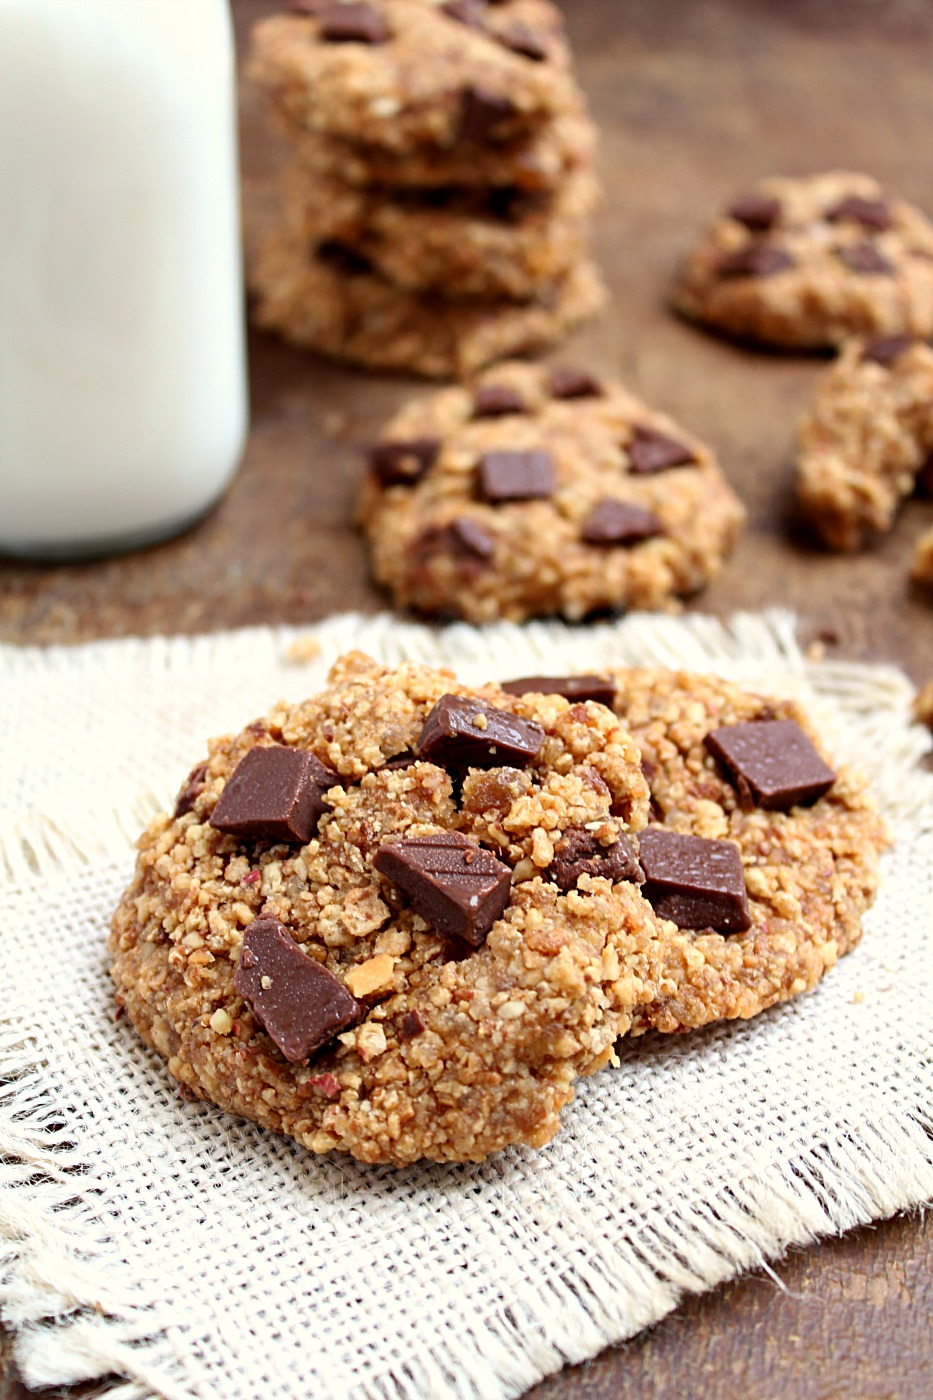 No Bake Peanut Butter + Chocolate Cookies - Only 5 Ingredients and they're vegan, gluten free and super healthy!